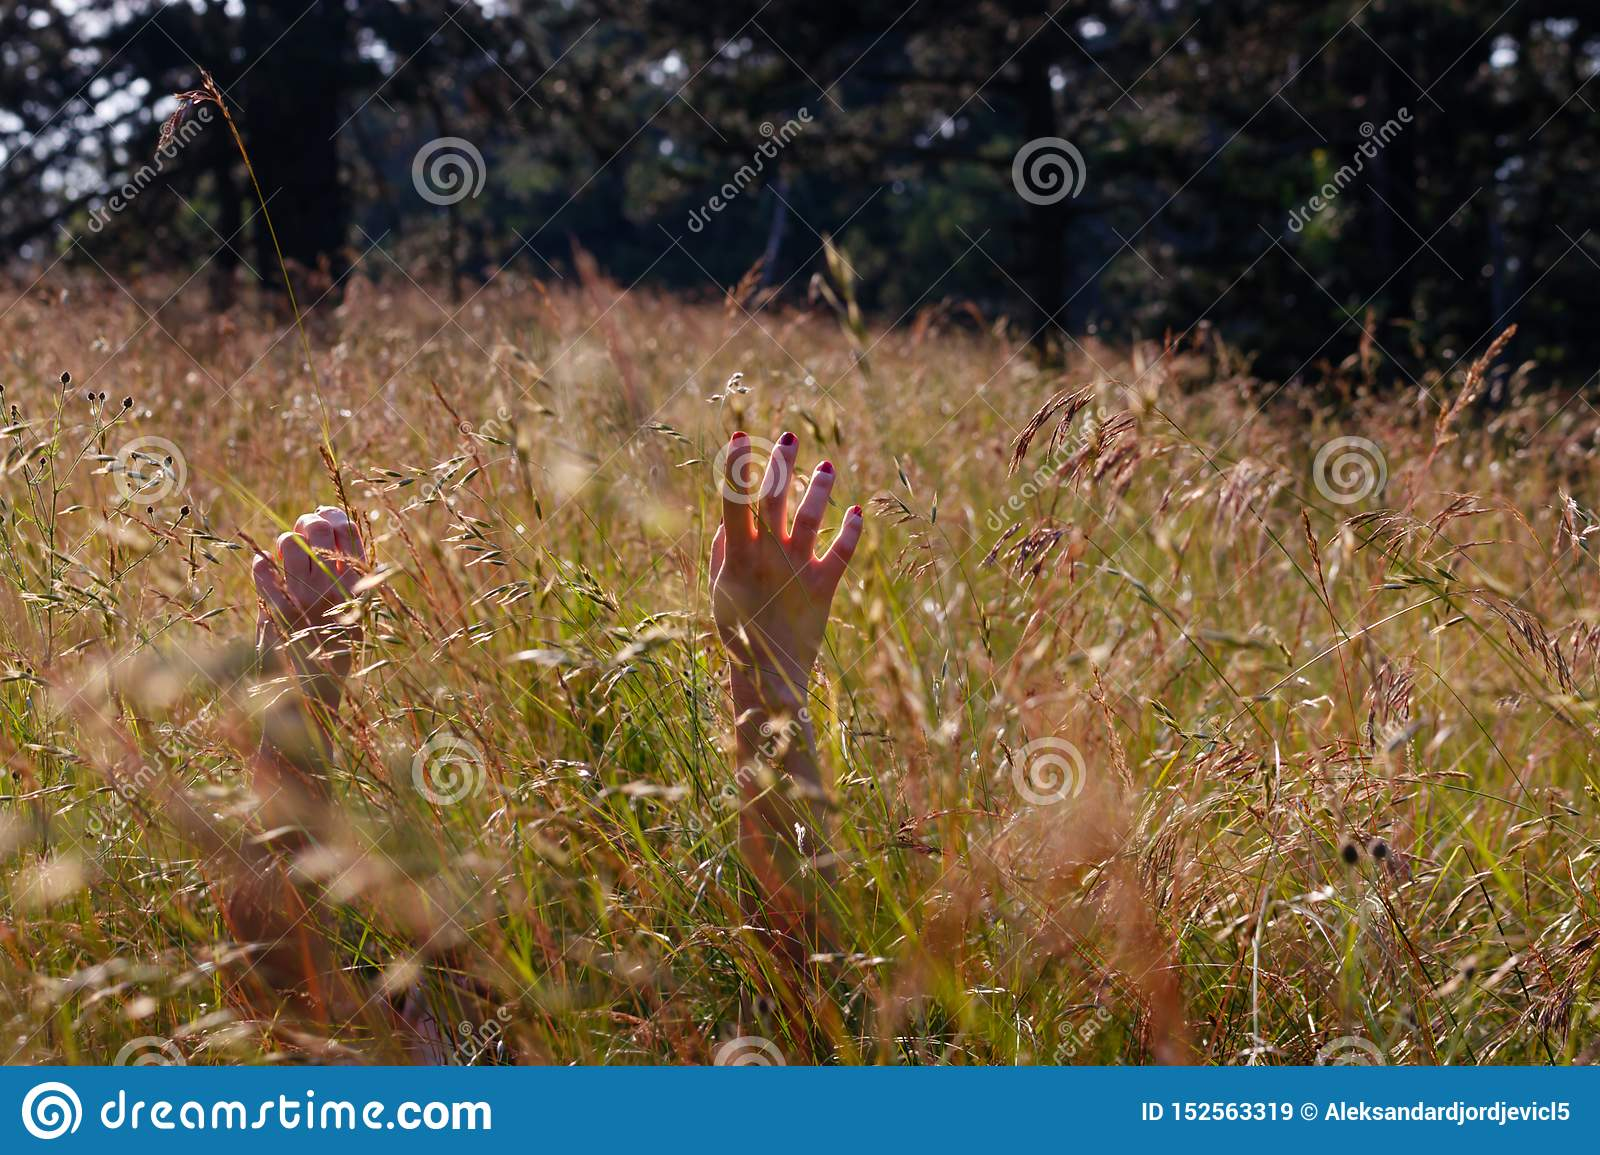 Hands of a young woman relaxing in the sunny field